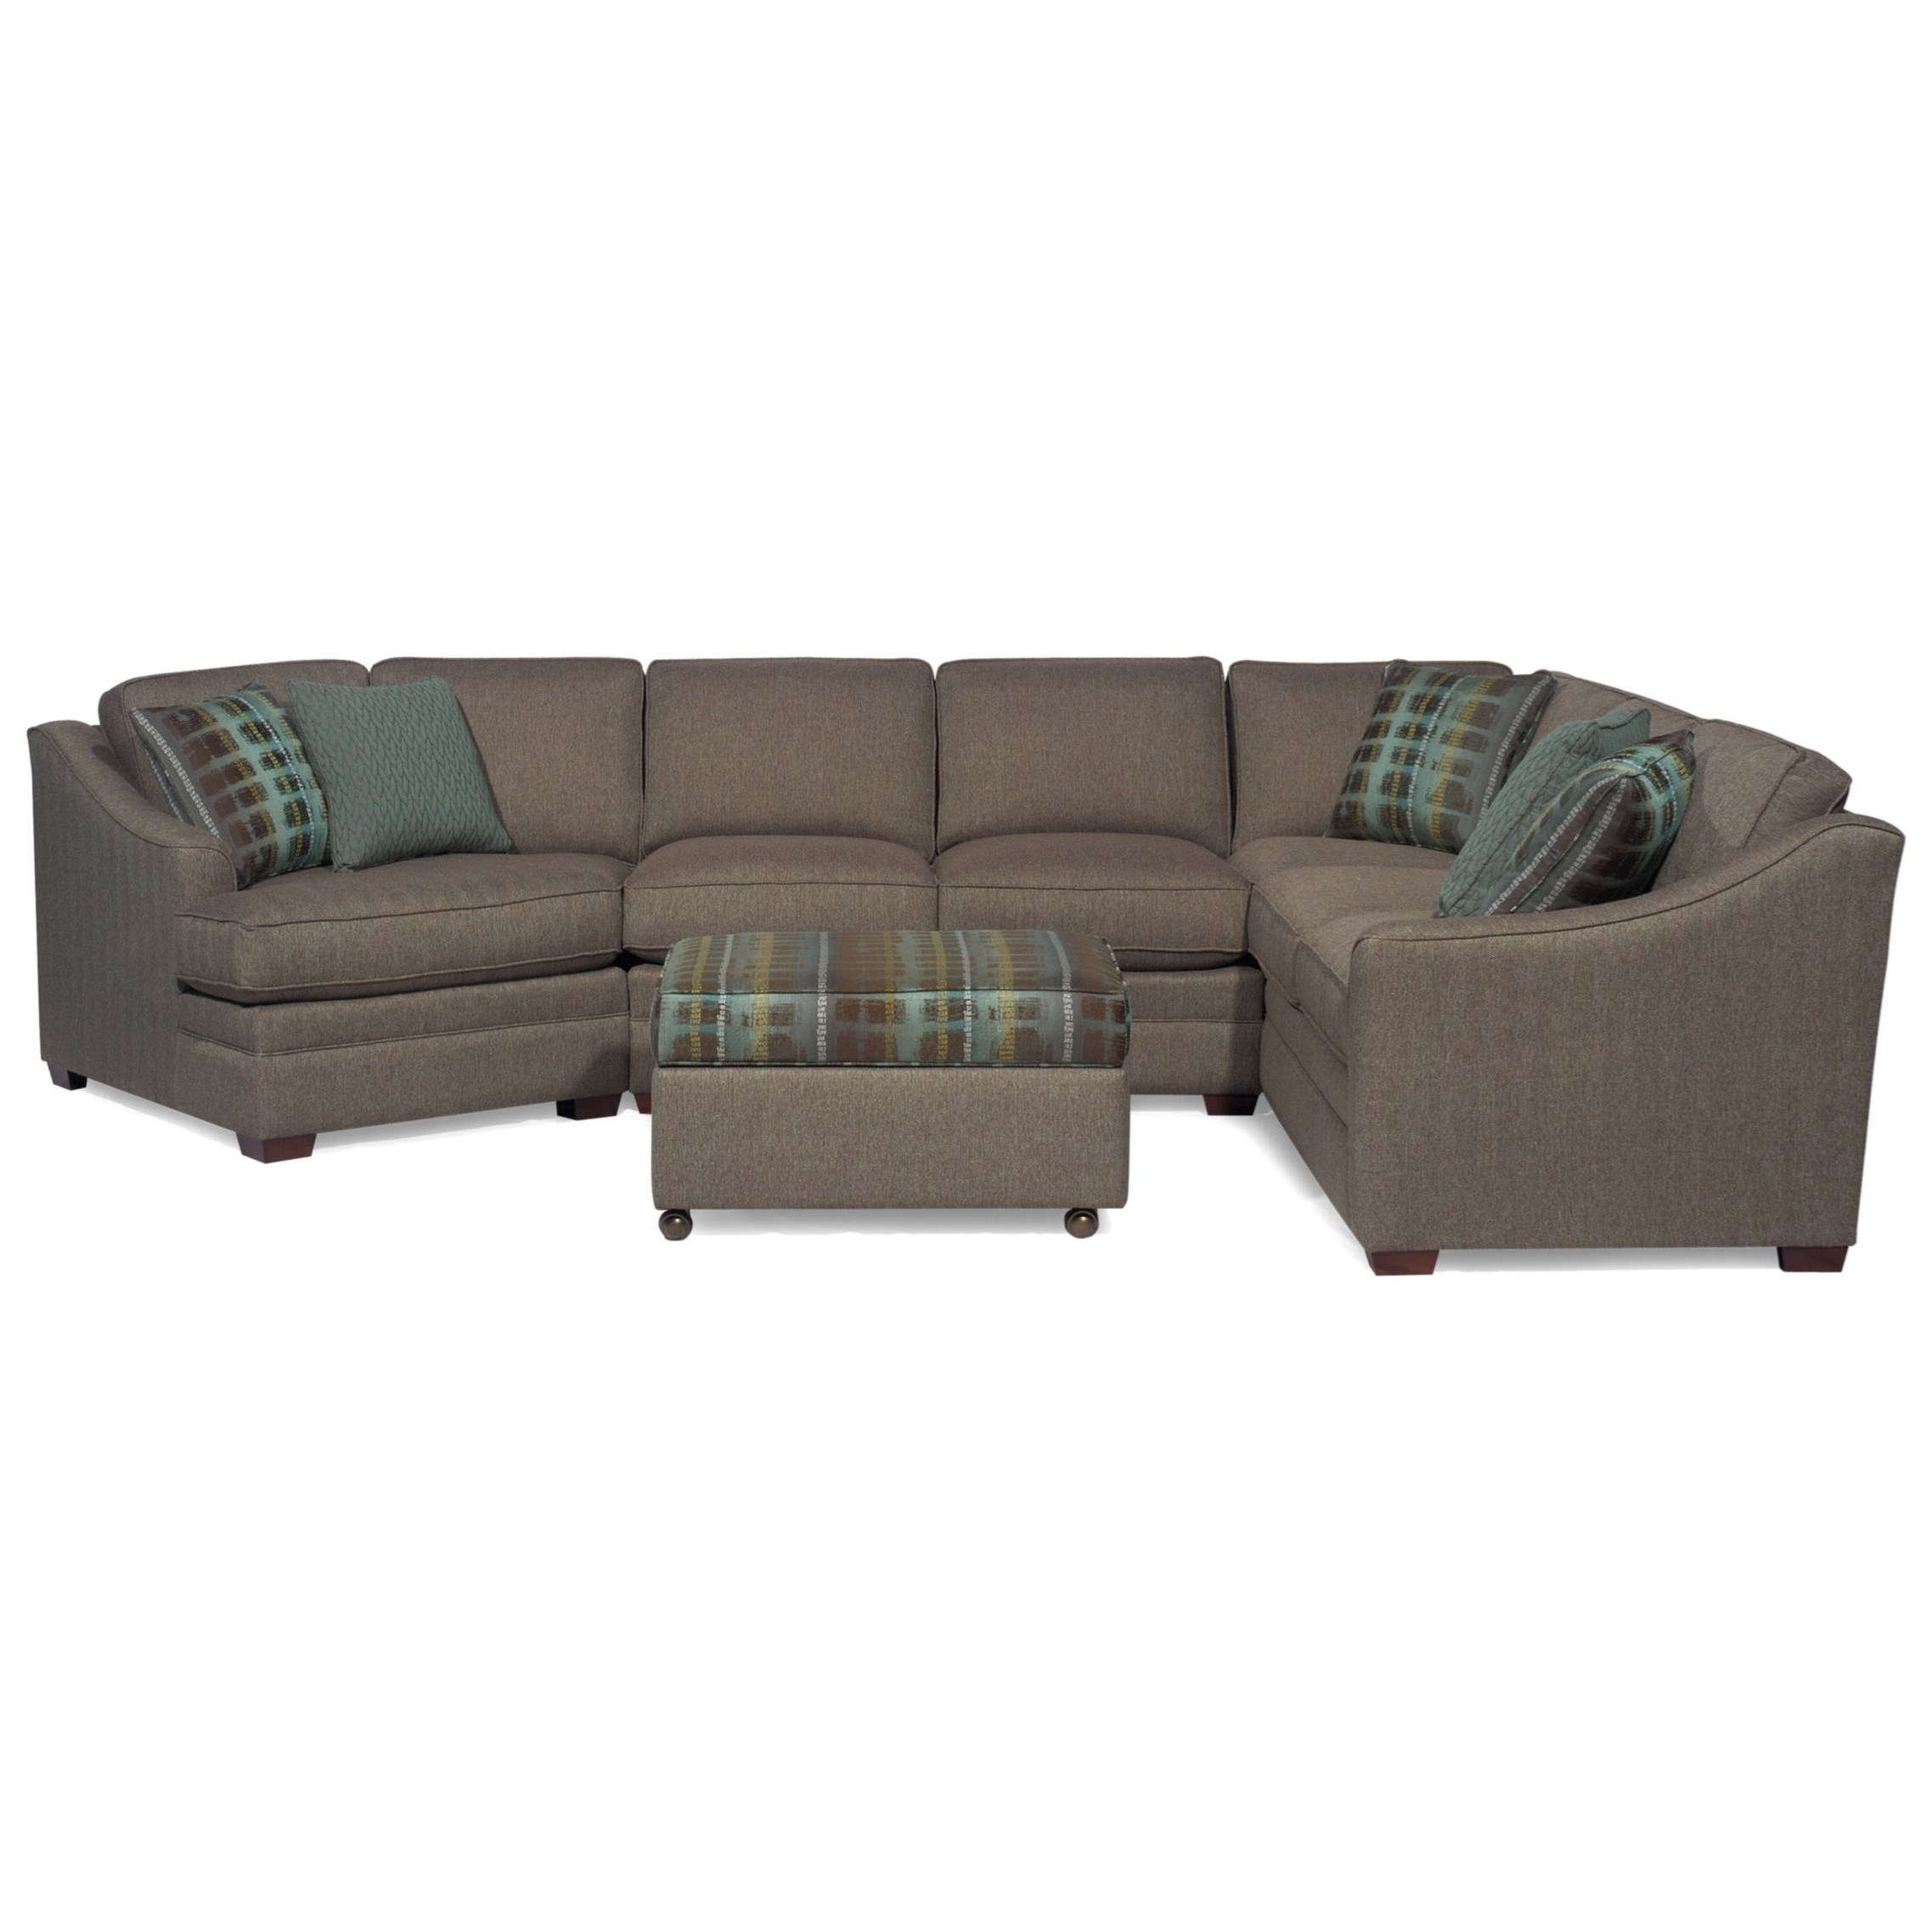 Craftmaster F9 Design Options <B>Customizable</b> 3-Piece Sectional throughout Adeline 3 Piece Sectionals (Image 11 of 30)